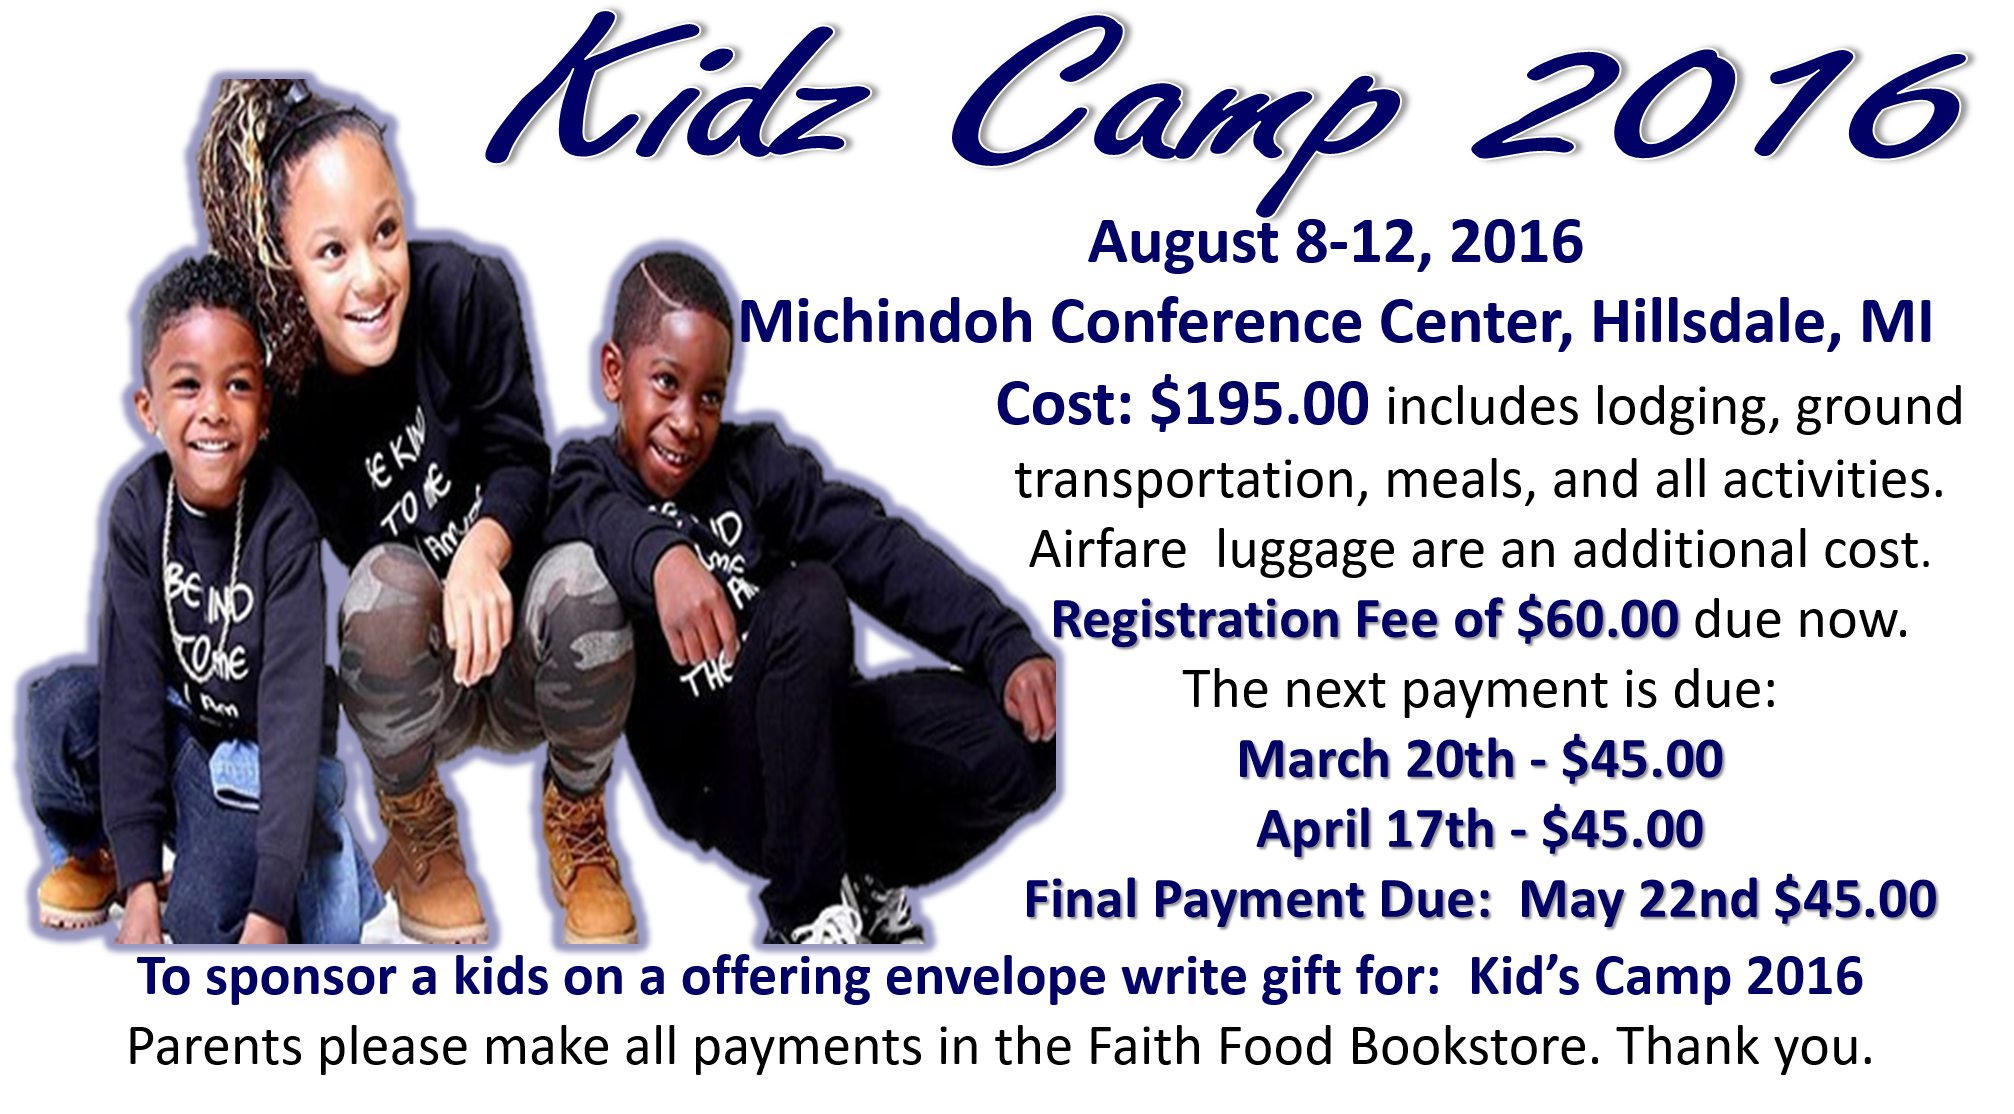 Kids Camp 2016 - Fee schedule